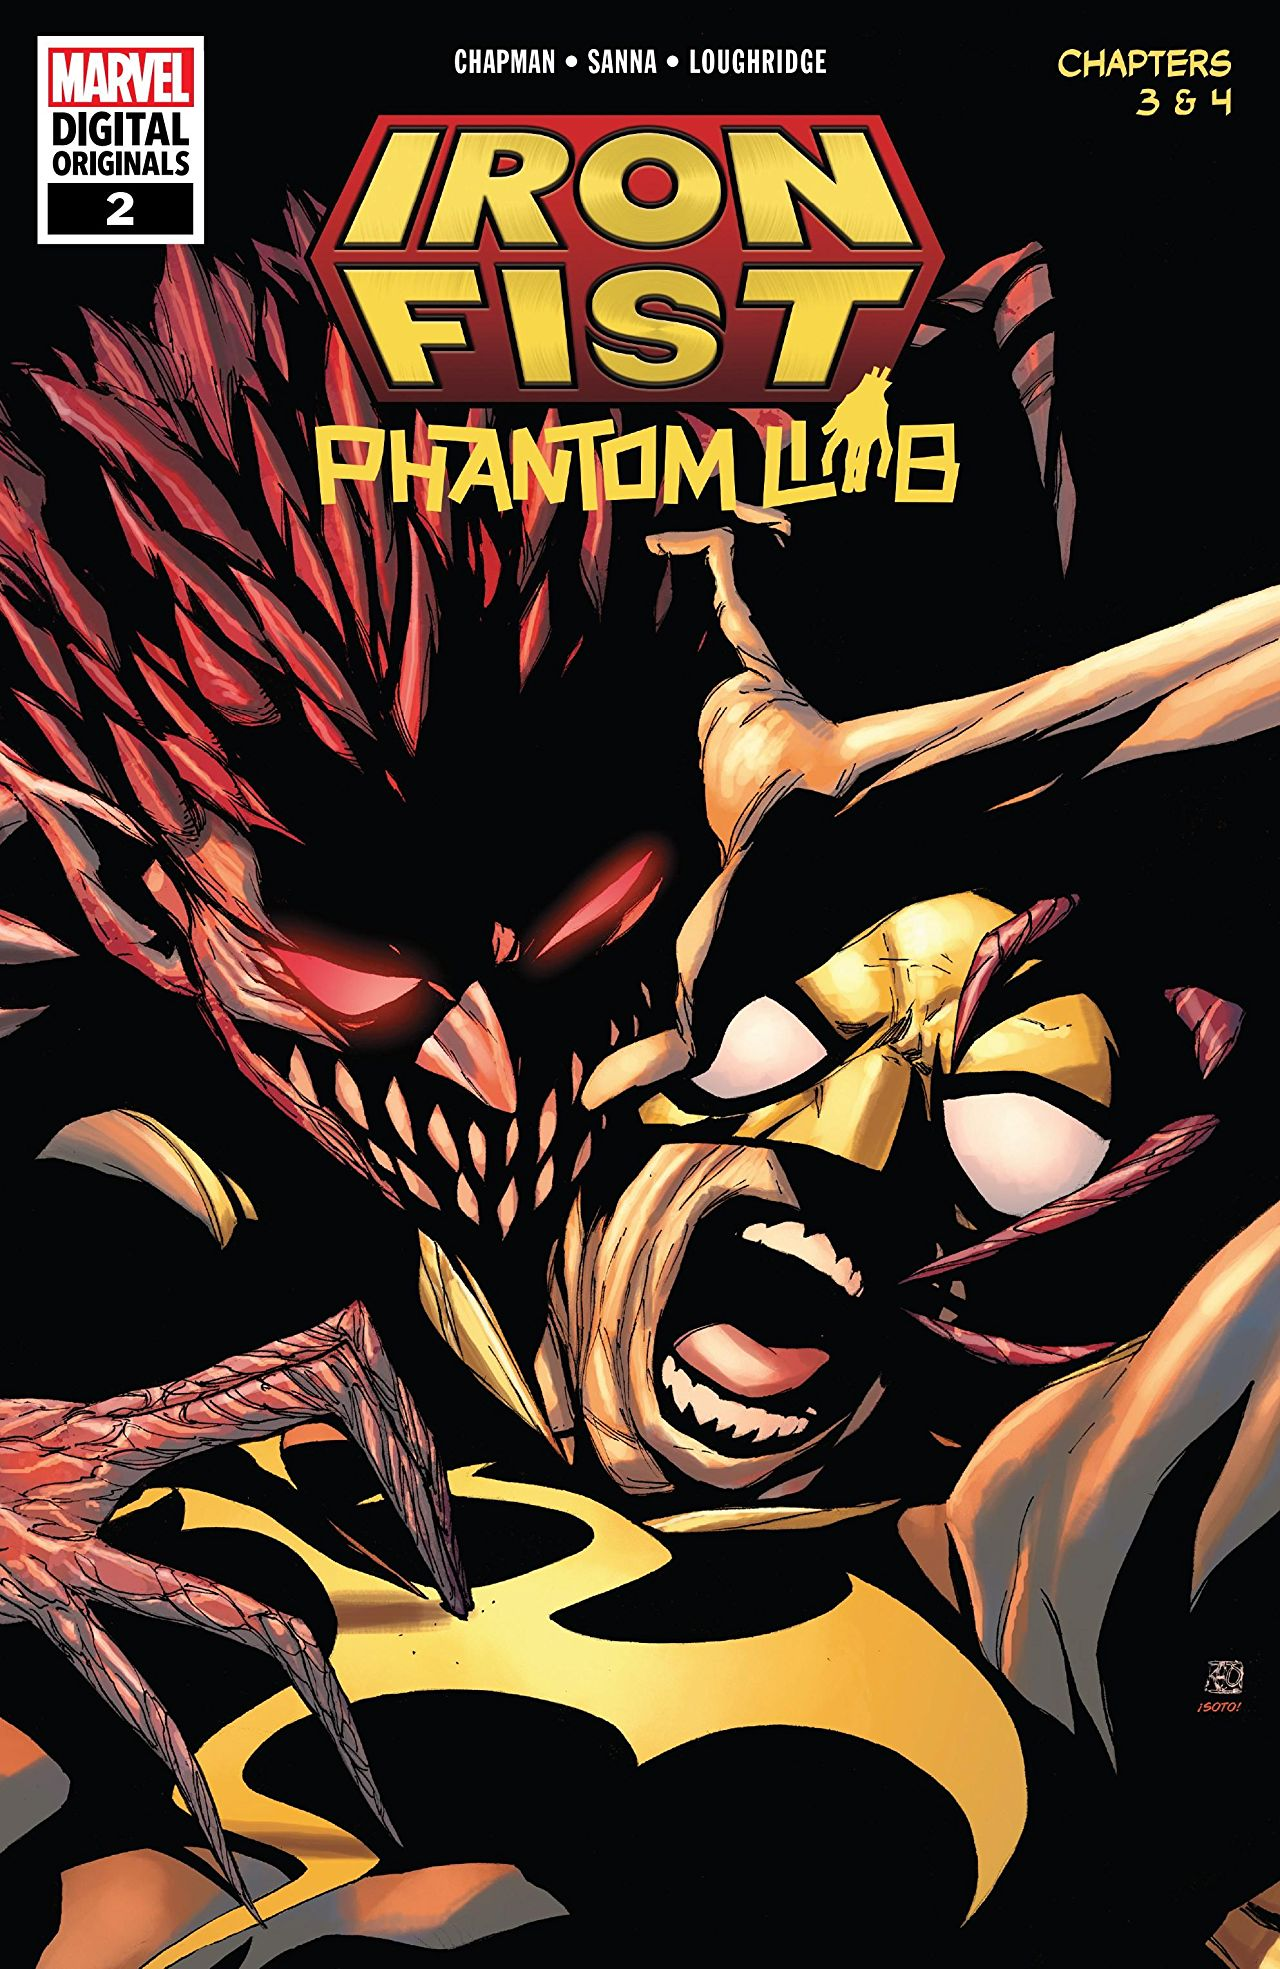 IRON FIST: PHANTOM LIMB #2